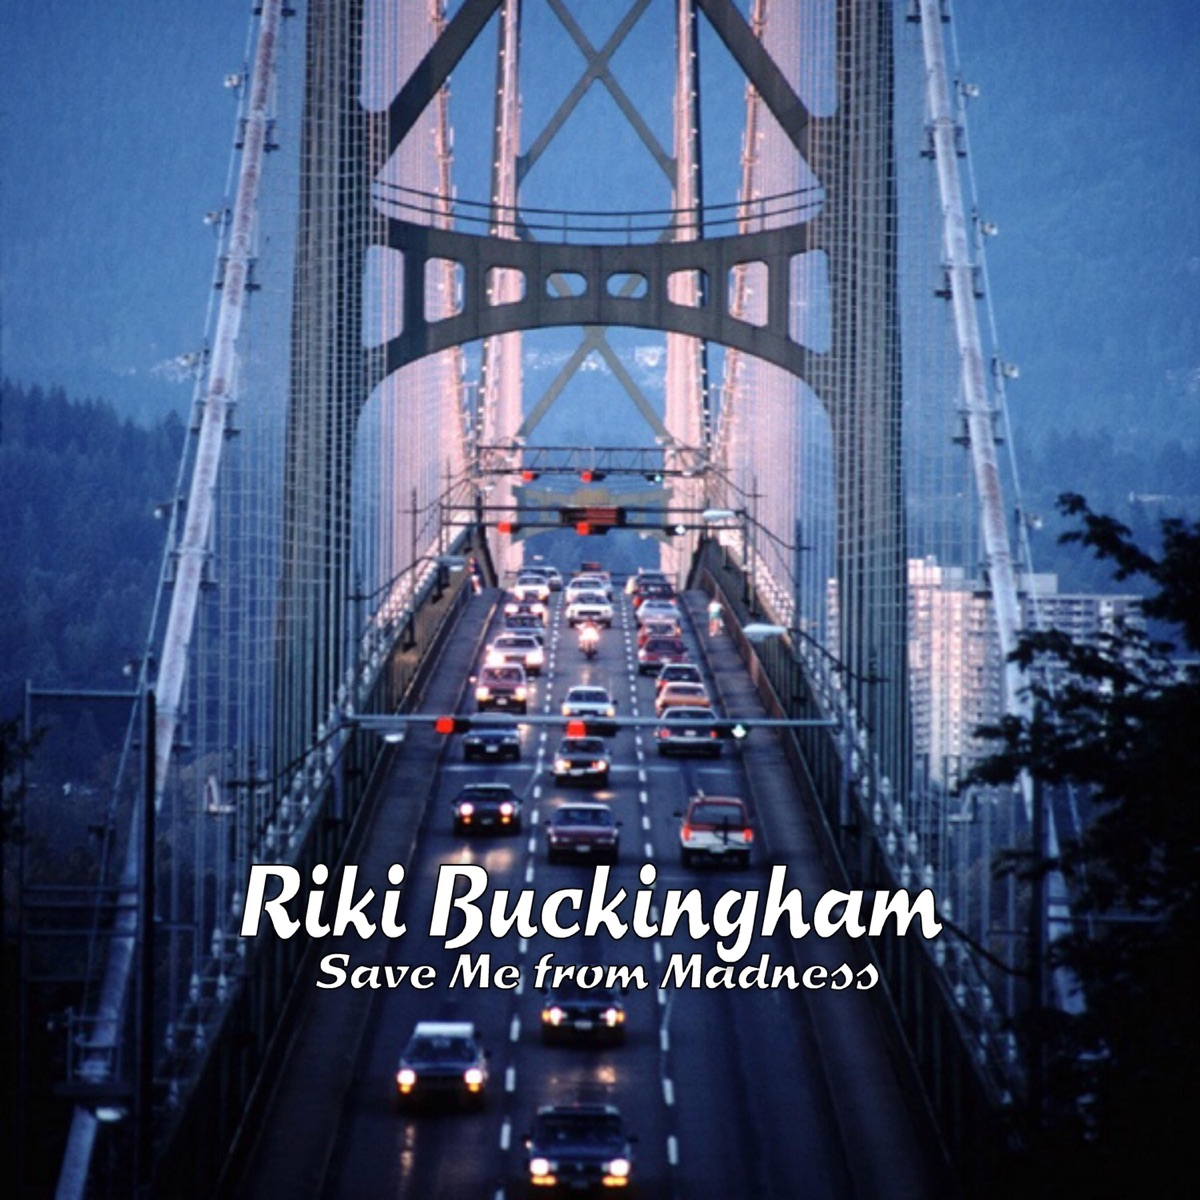 Save Me from Madness Riki Buckingham CD cover